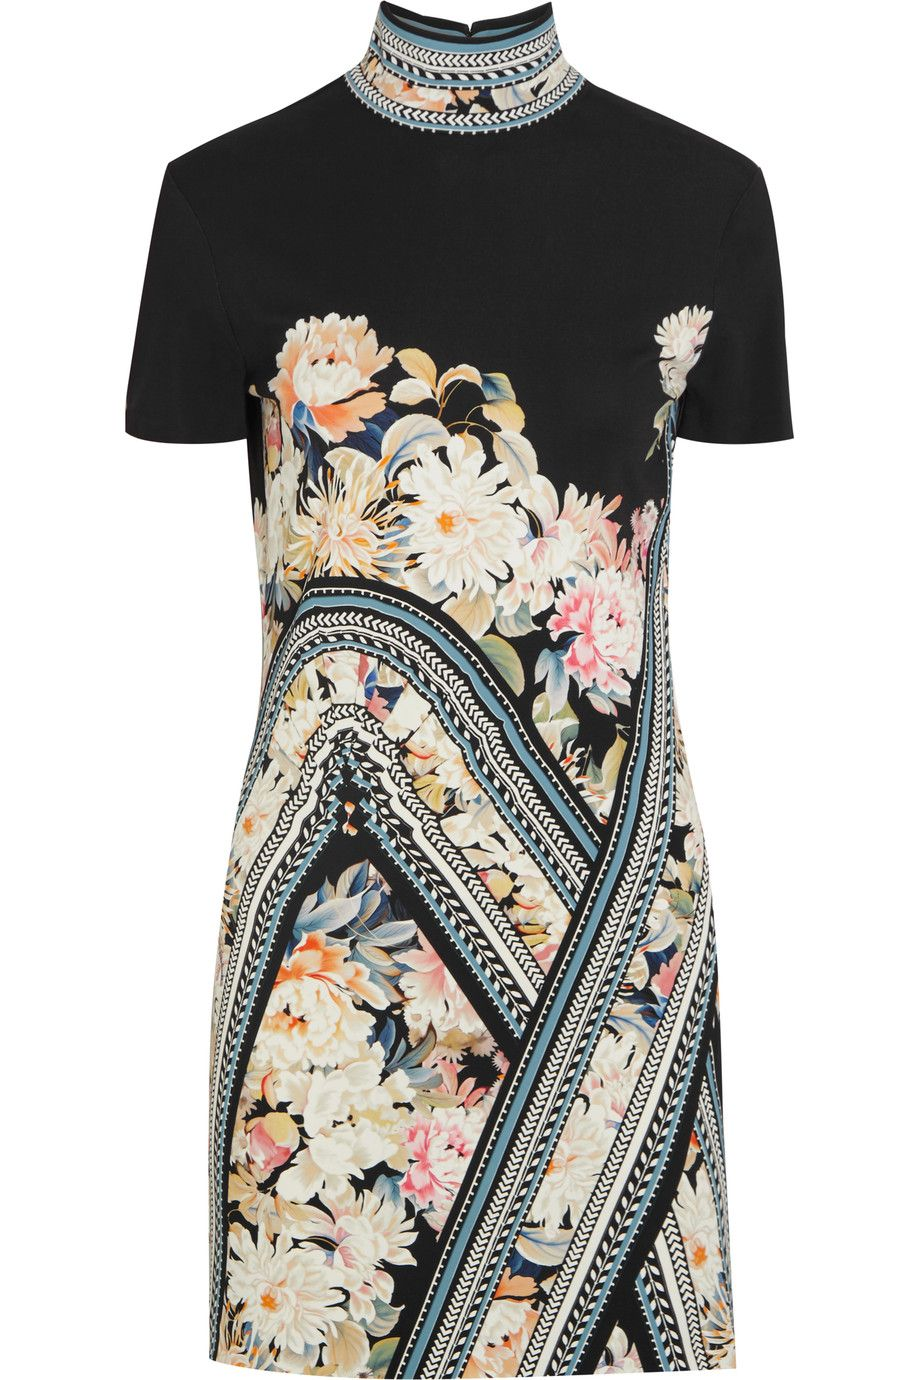 ROBERTO CAVALLI Floral-Print Stretch-Crepe Mini Dress. #robertocavalli #cloth #dress